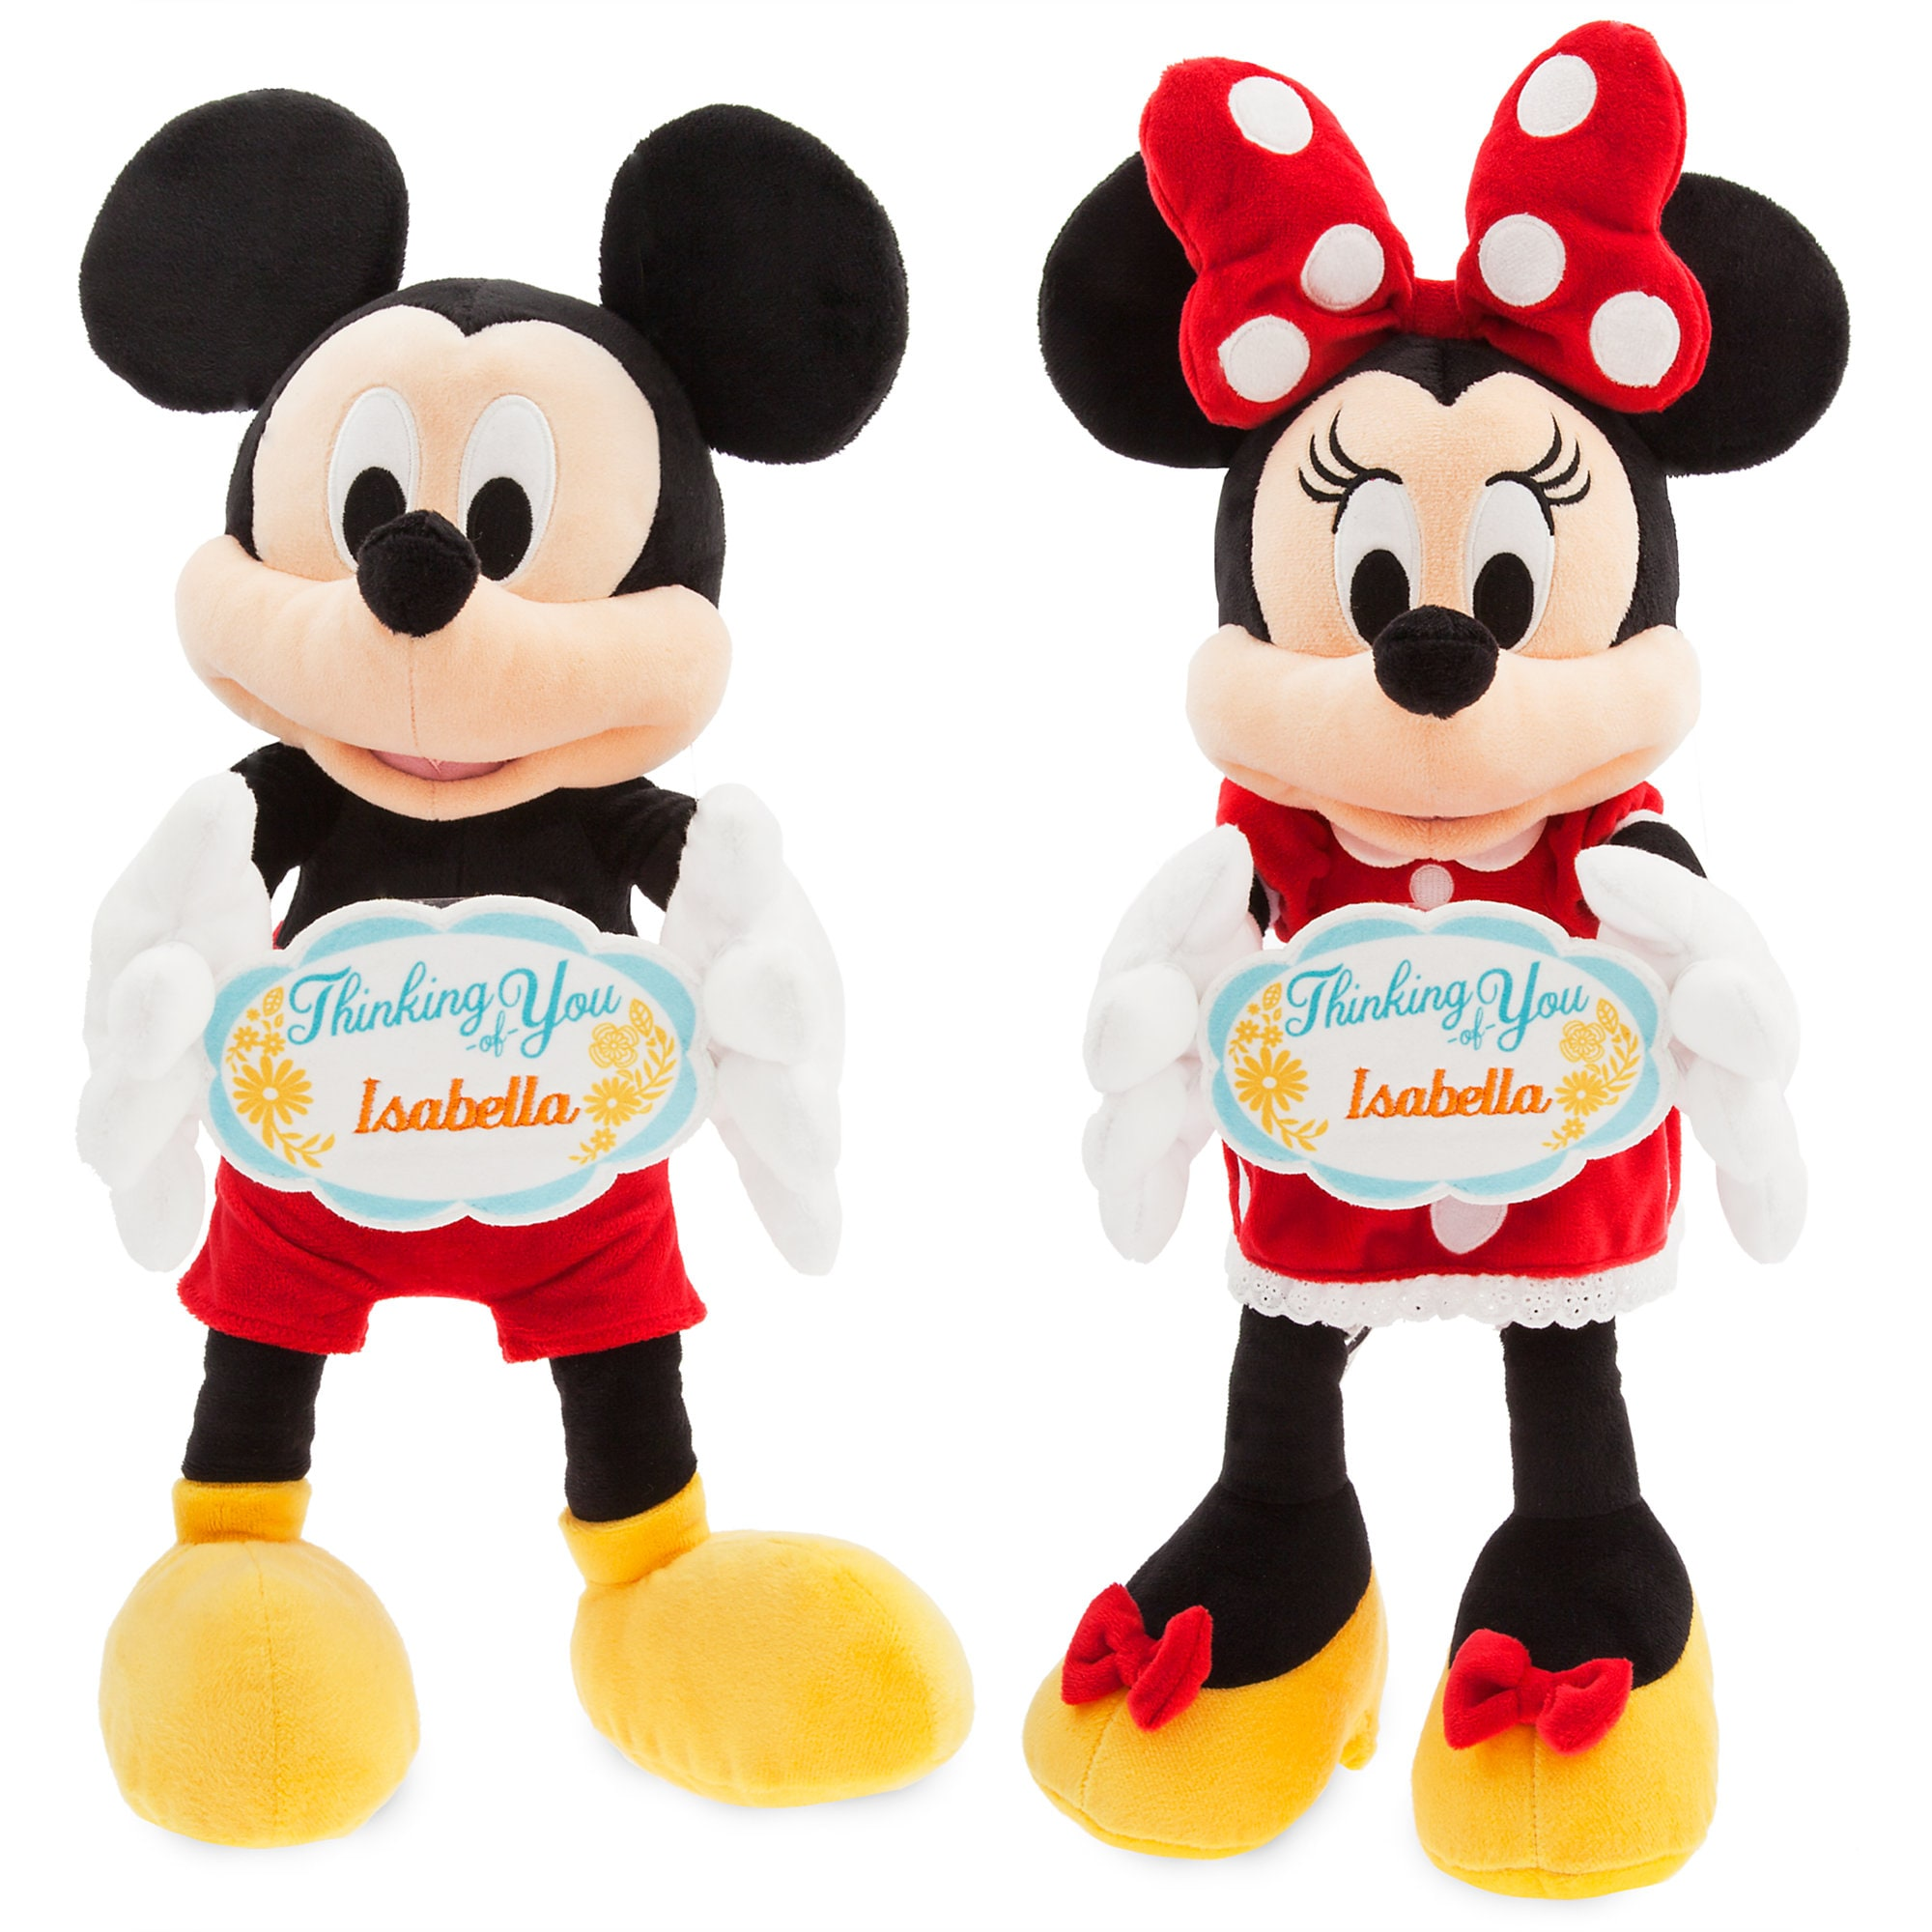 Mickey and Minnie Mouse ''Thinking of You'' Message Plush Collection